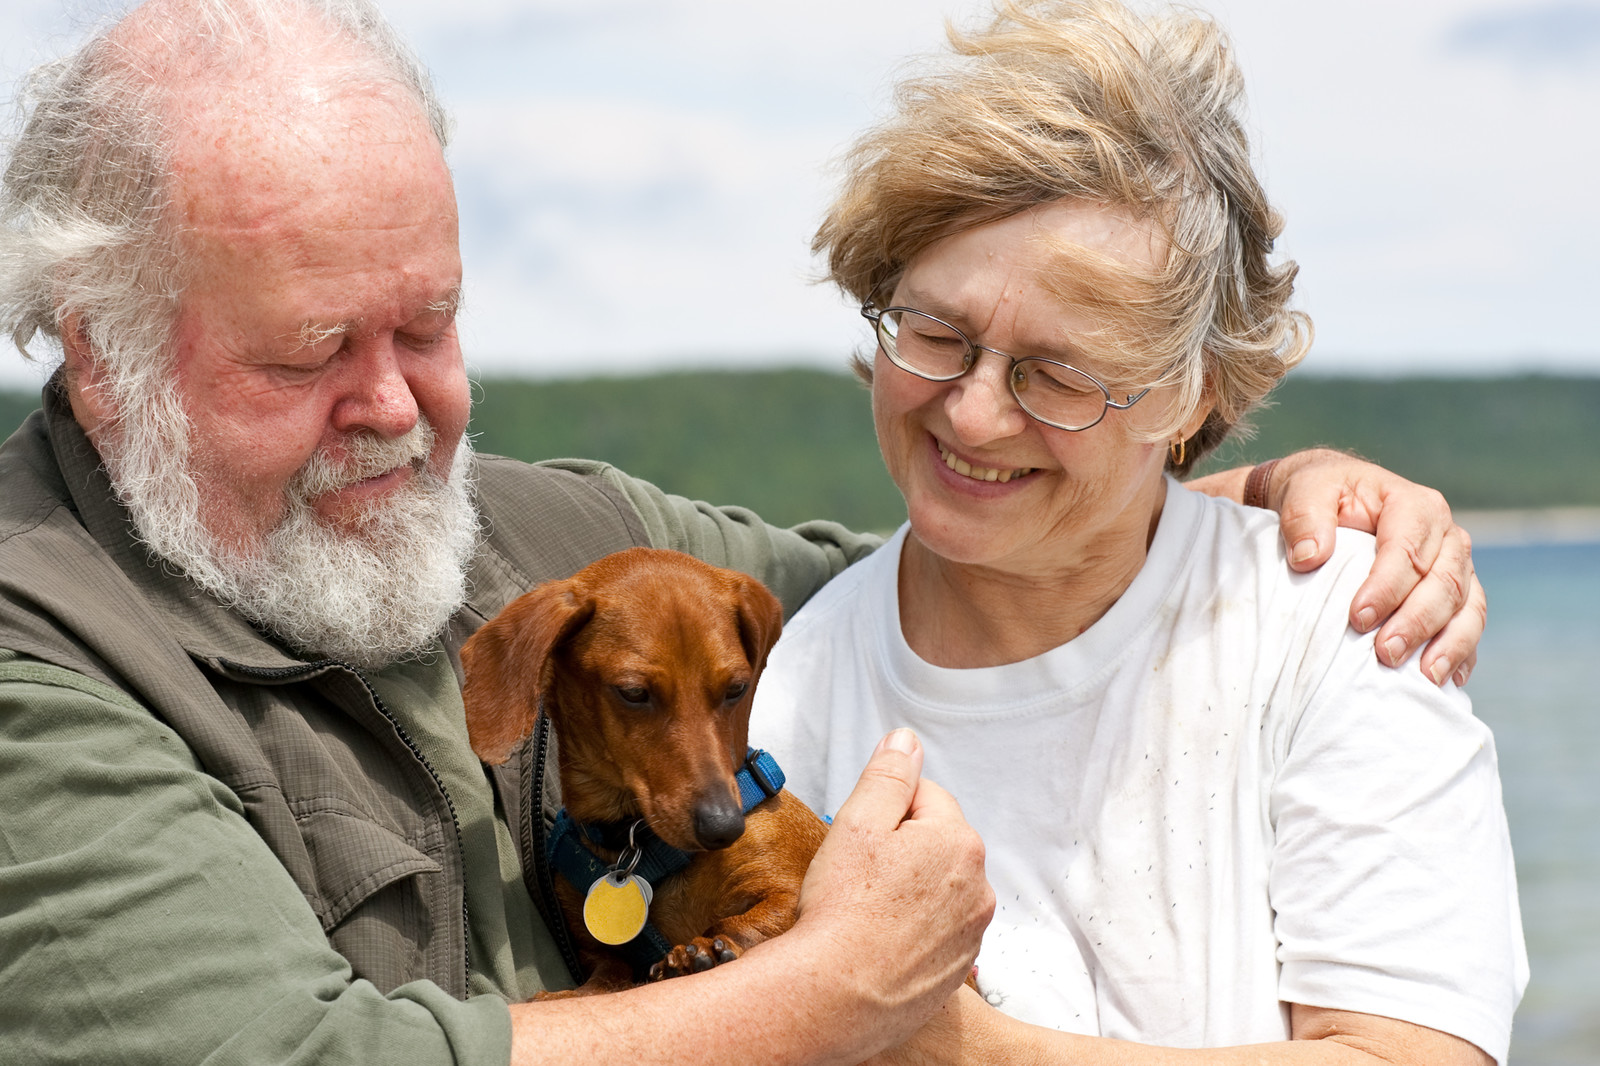 A smiling couple on a windy day holding a reddish brown dachshund, with a lake in the background.